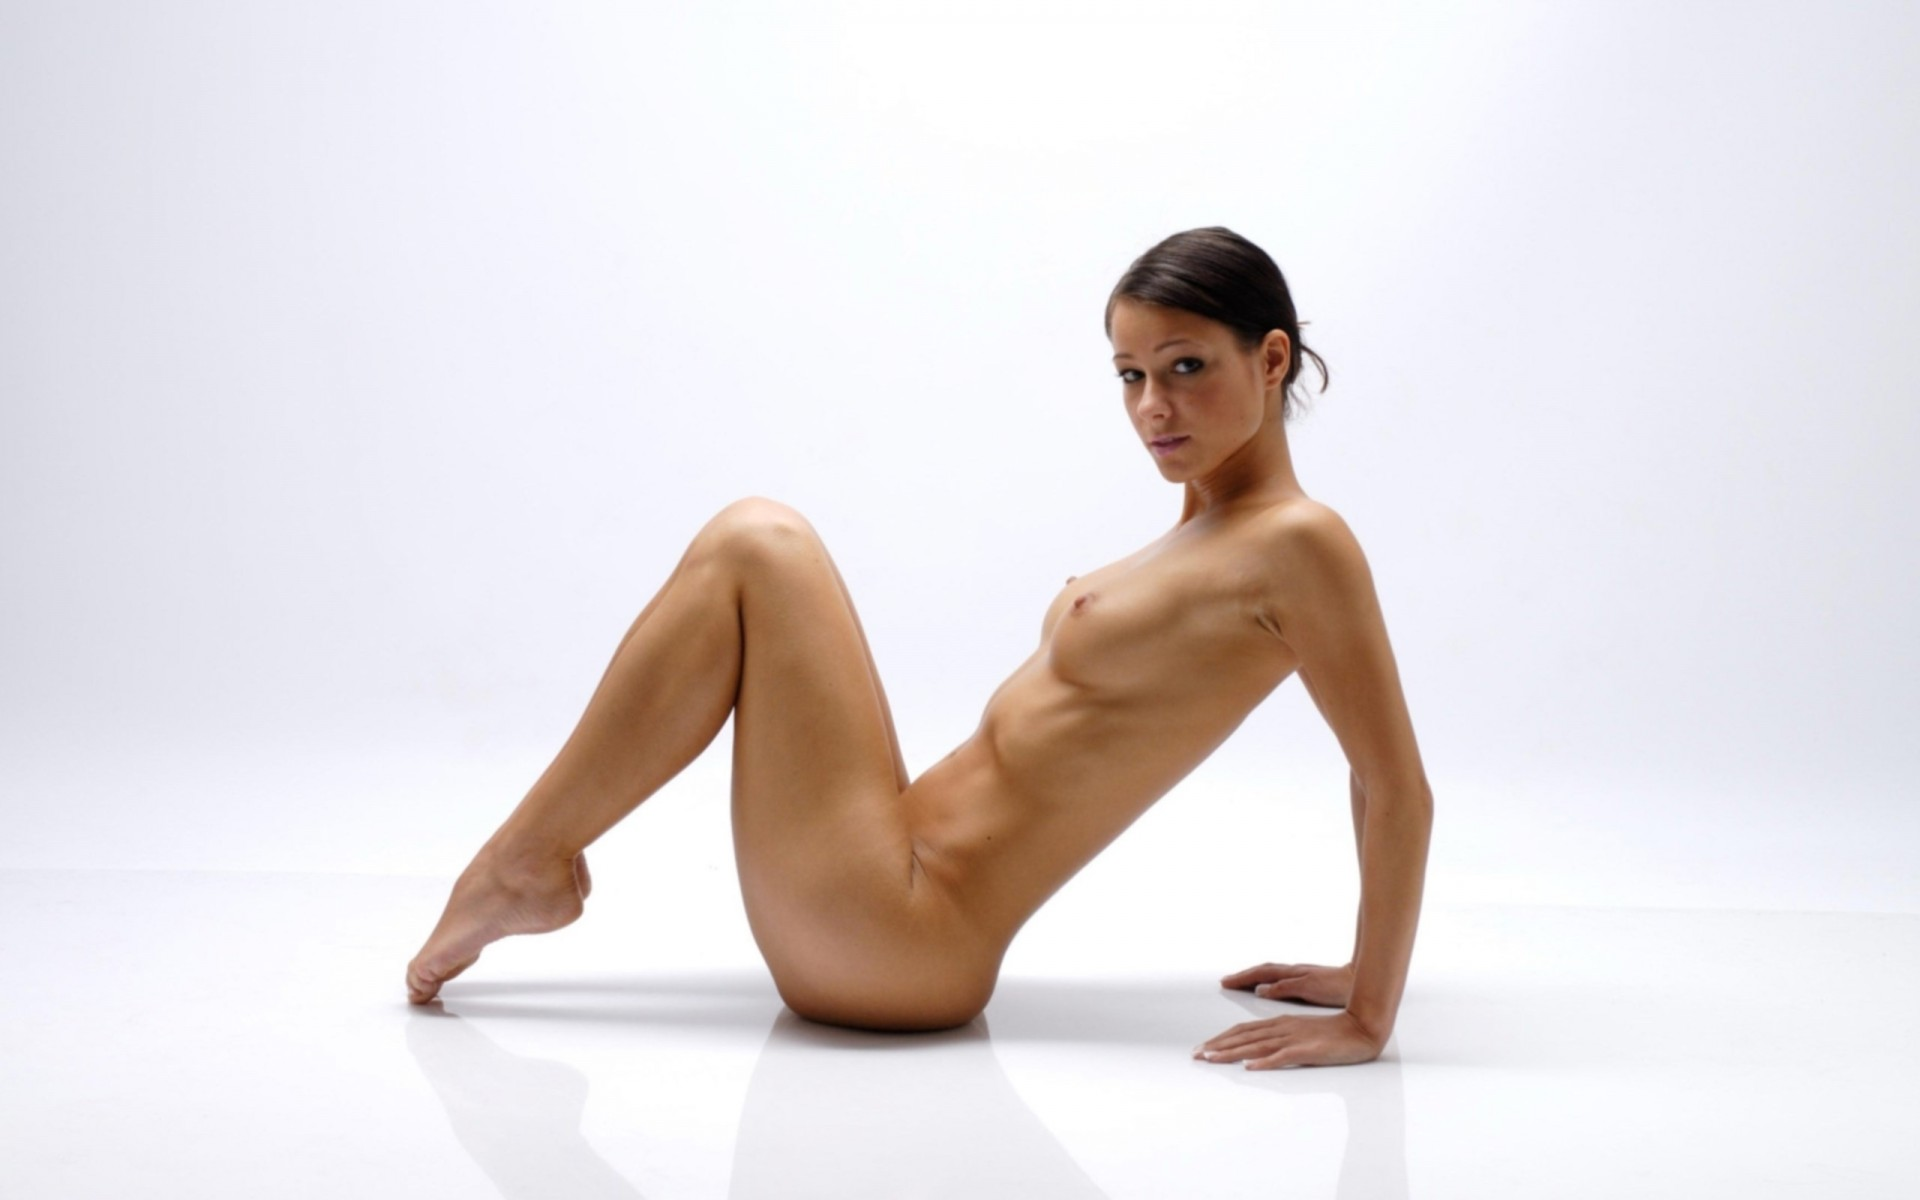 profile-nude-woman-stretching